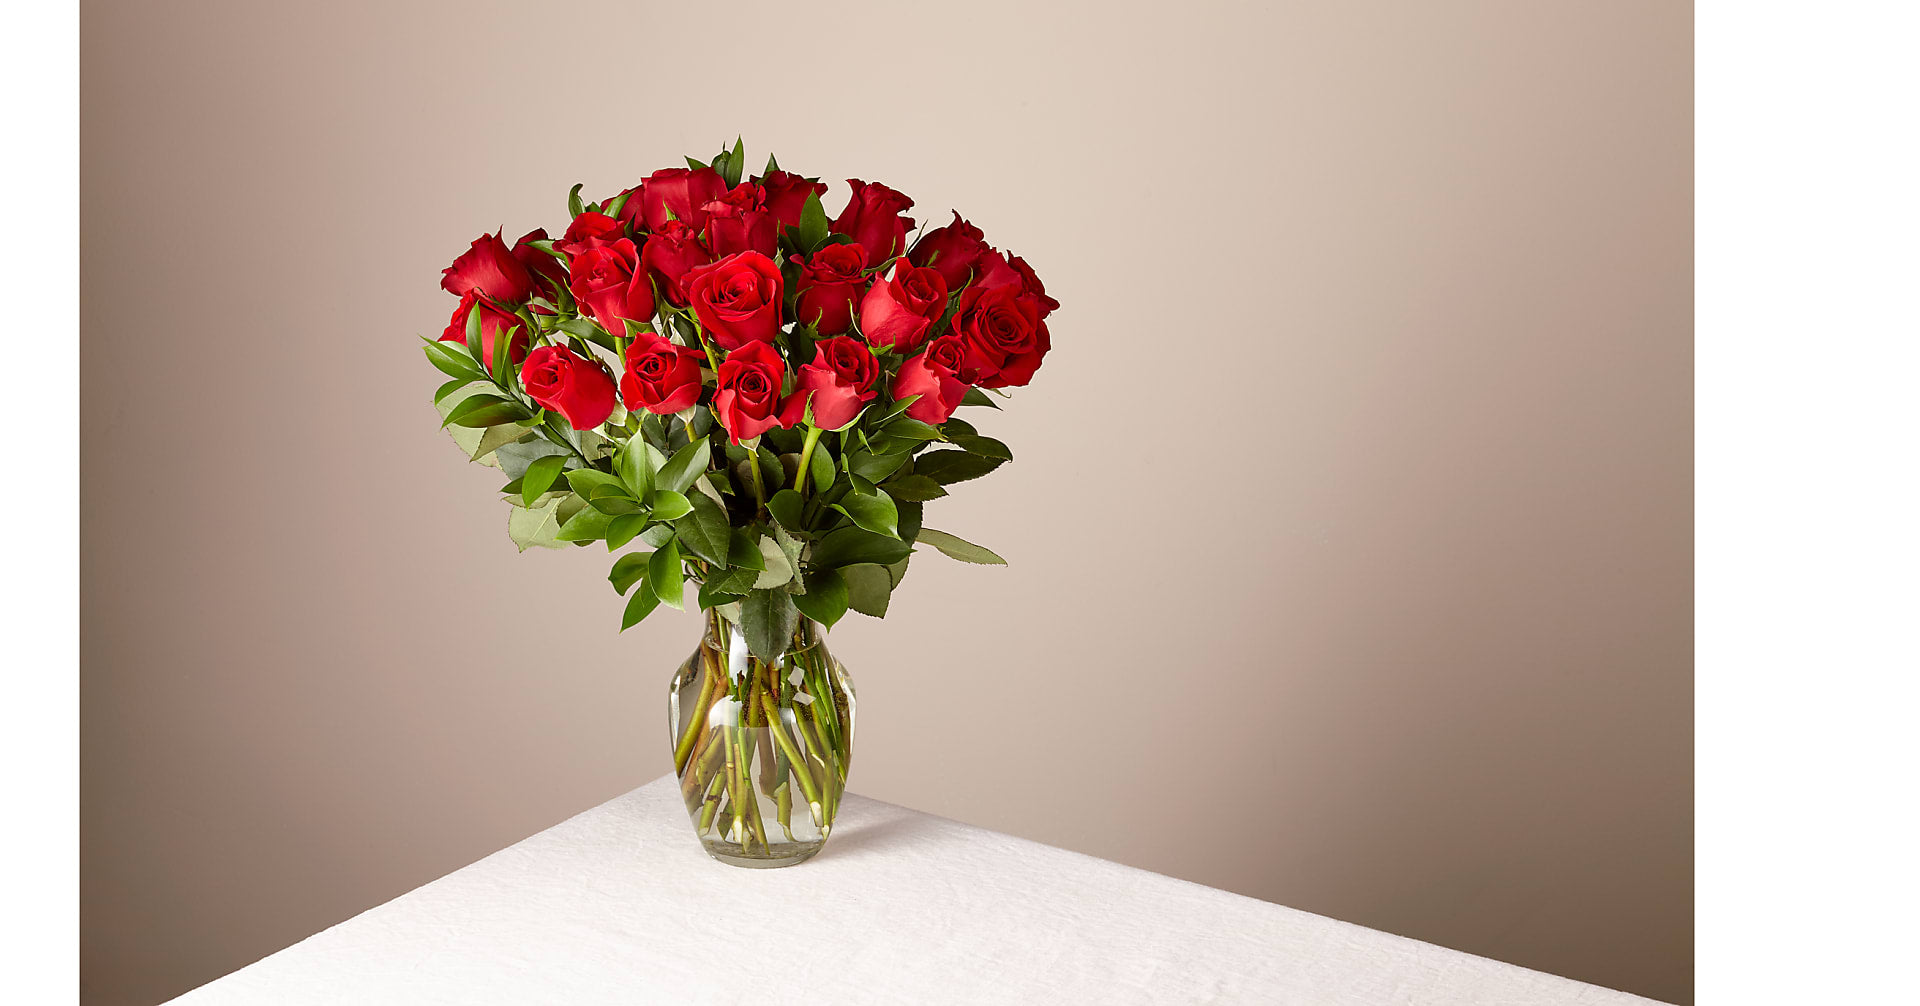 24 Red Roses with Glass Vase - Image 1 Of 6